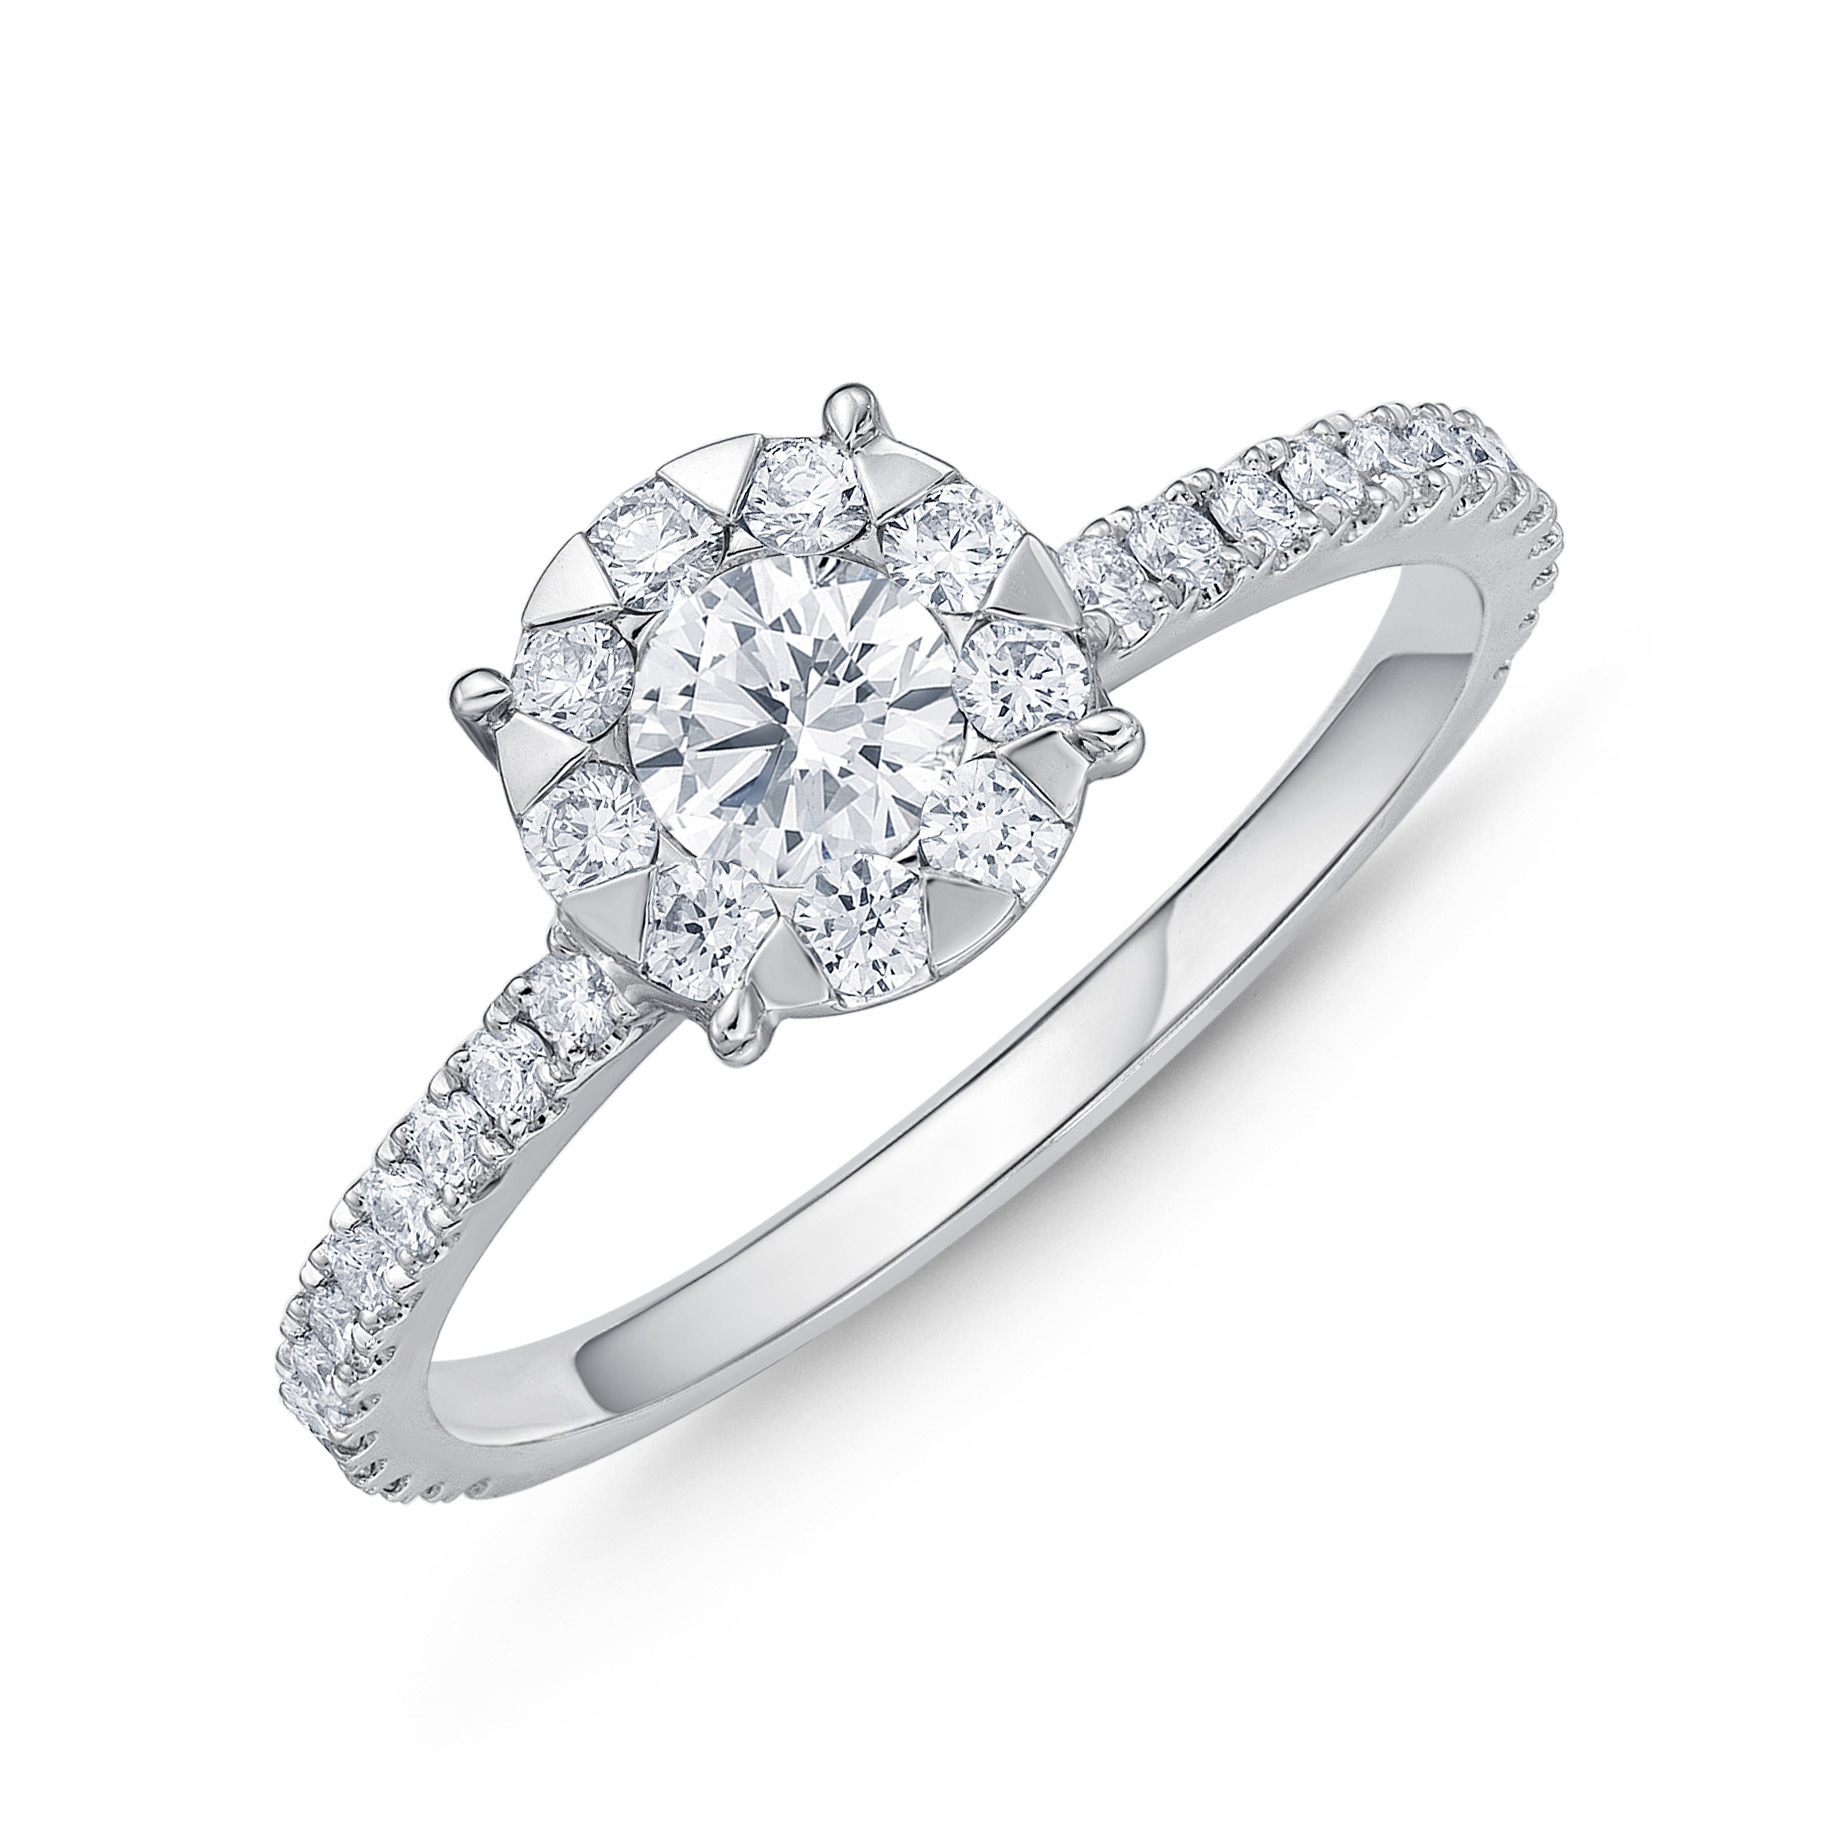 Memoire 18ct White Gold 0.45 Carat Diamond Bouquet Halo Solitaire Ring